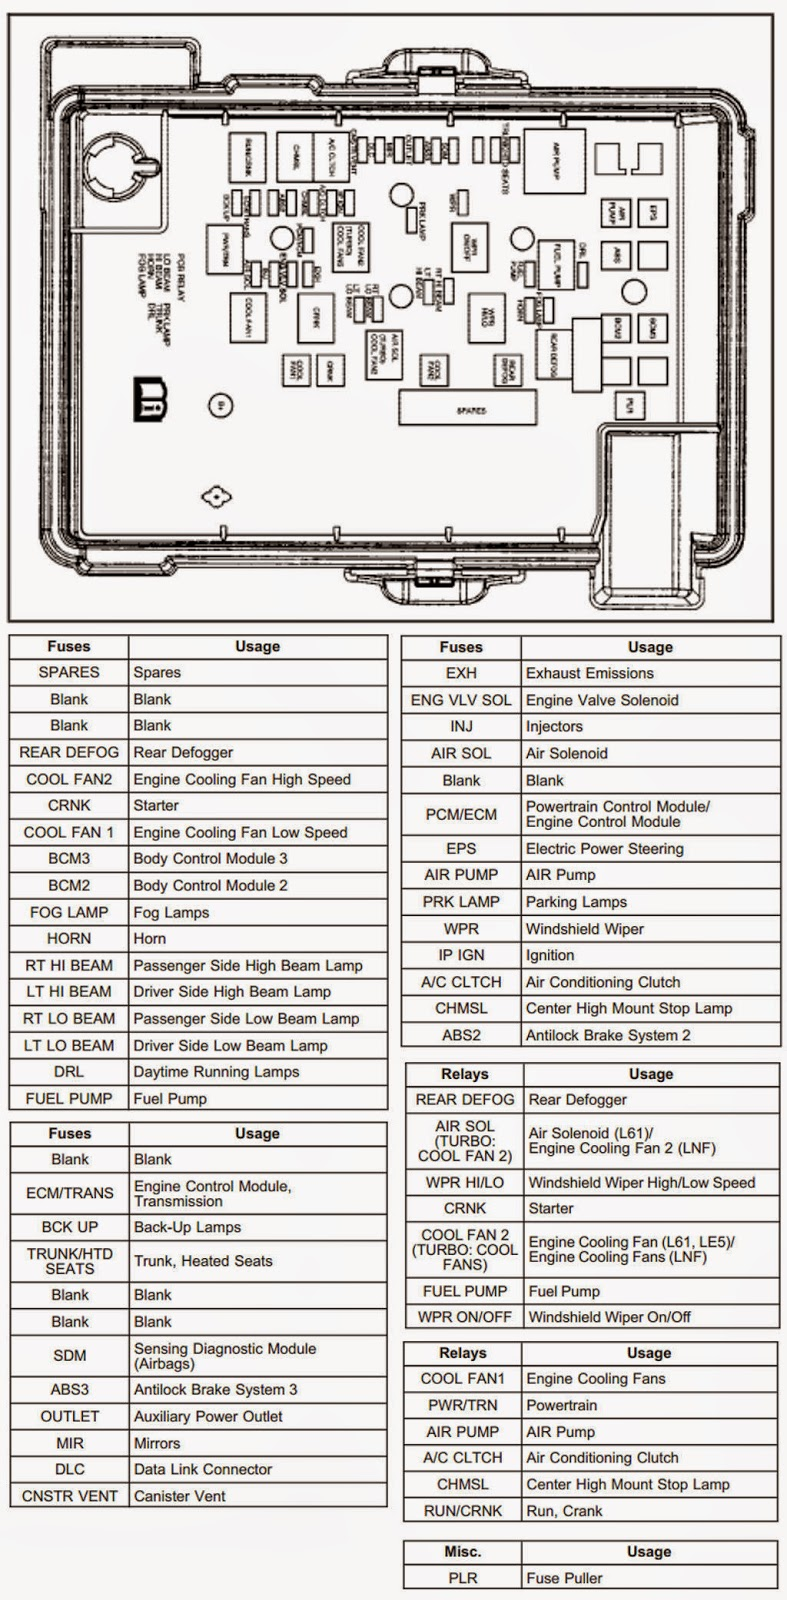 2005 Cobalt Fuse Box Wiring Diagram Schematics Nissan 350z Location Chevy 2008 Panel